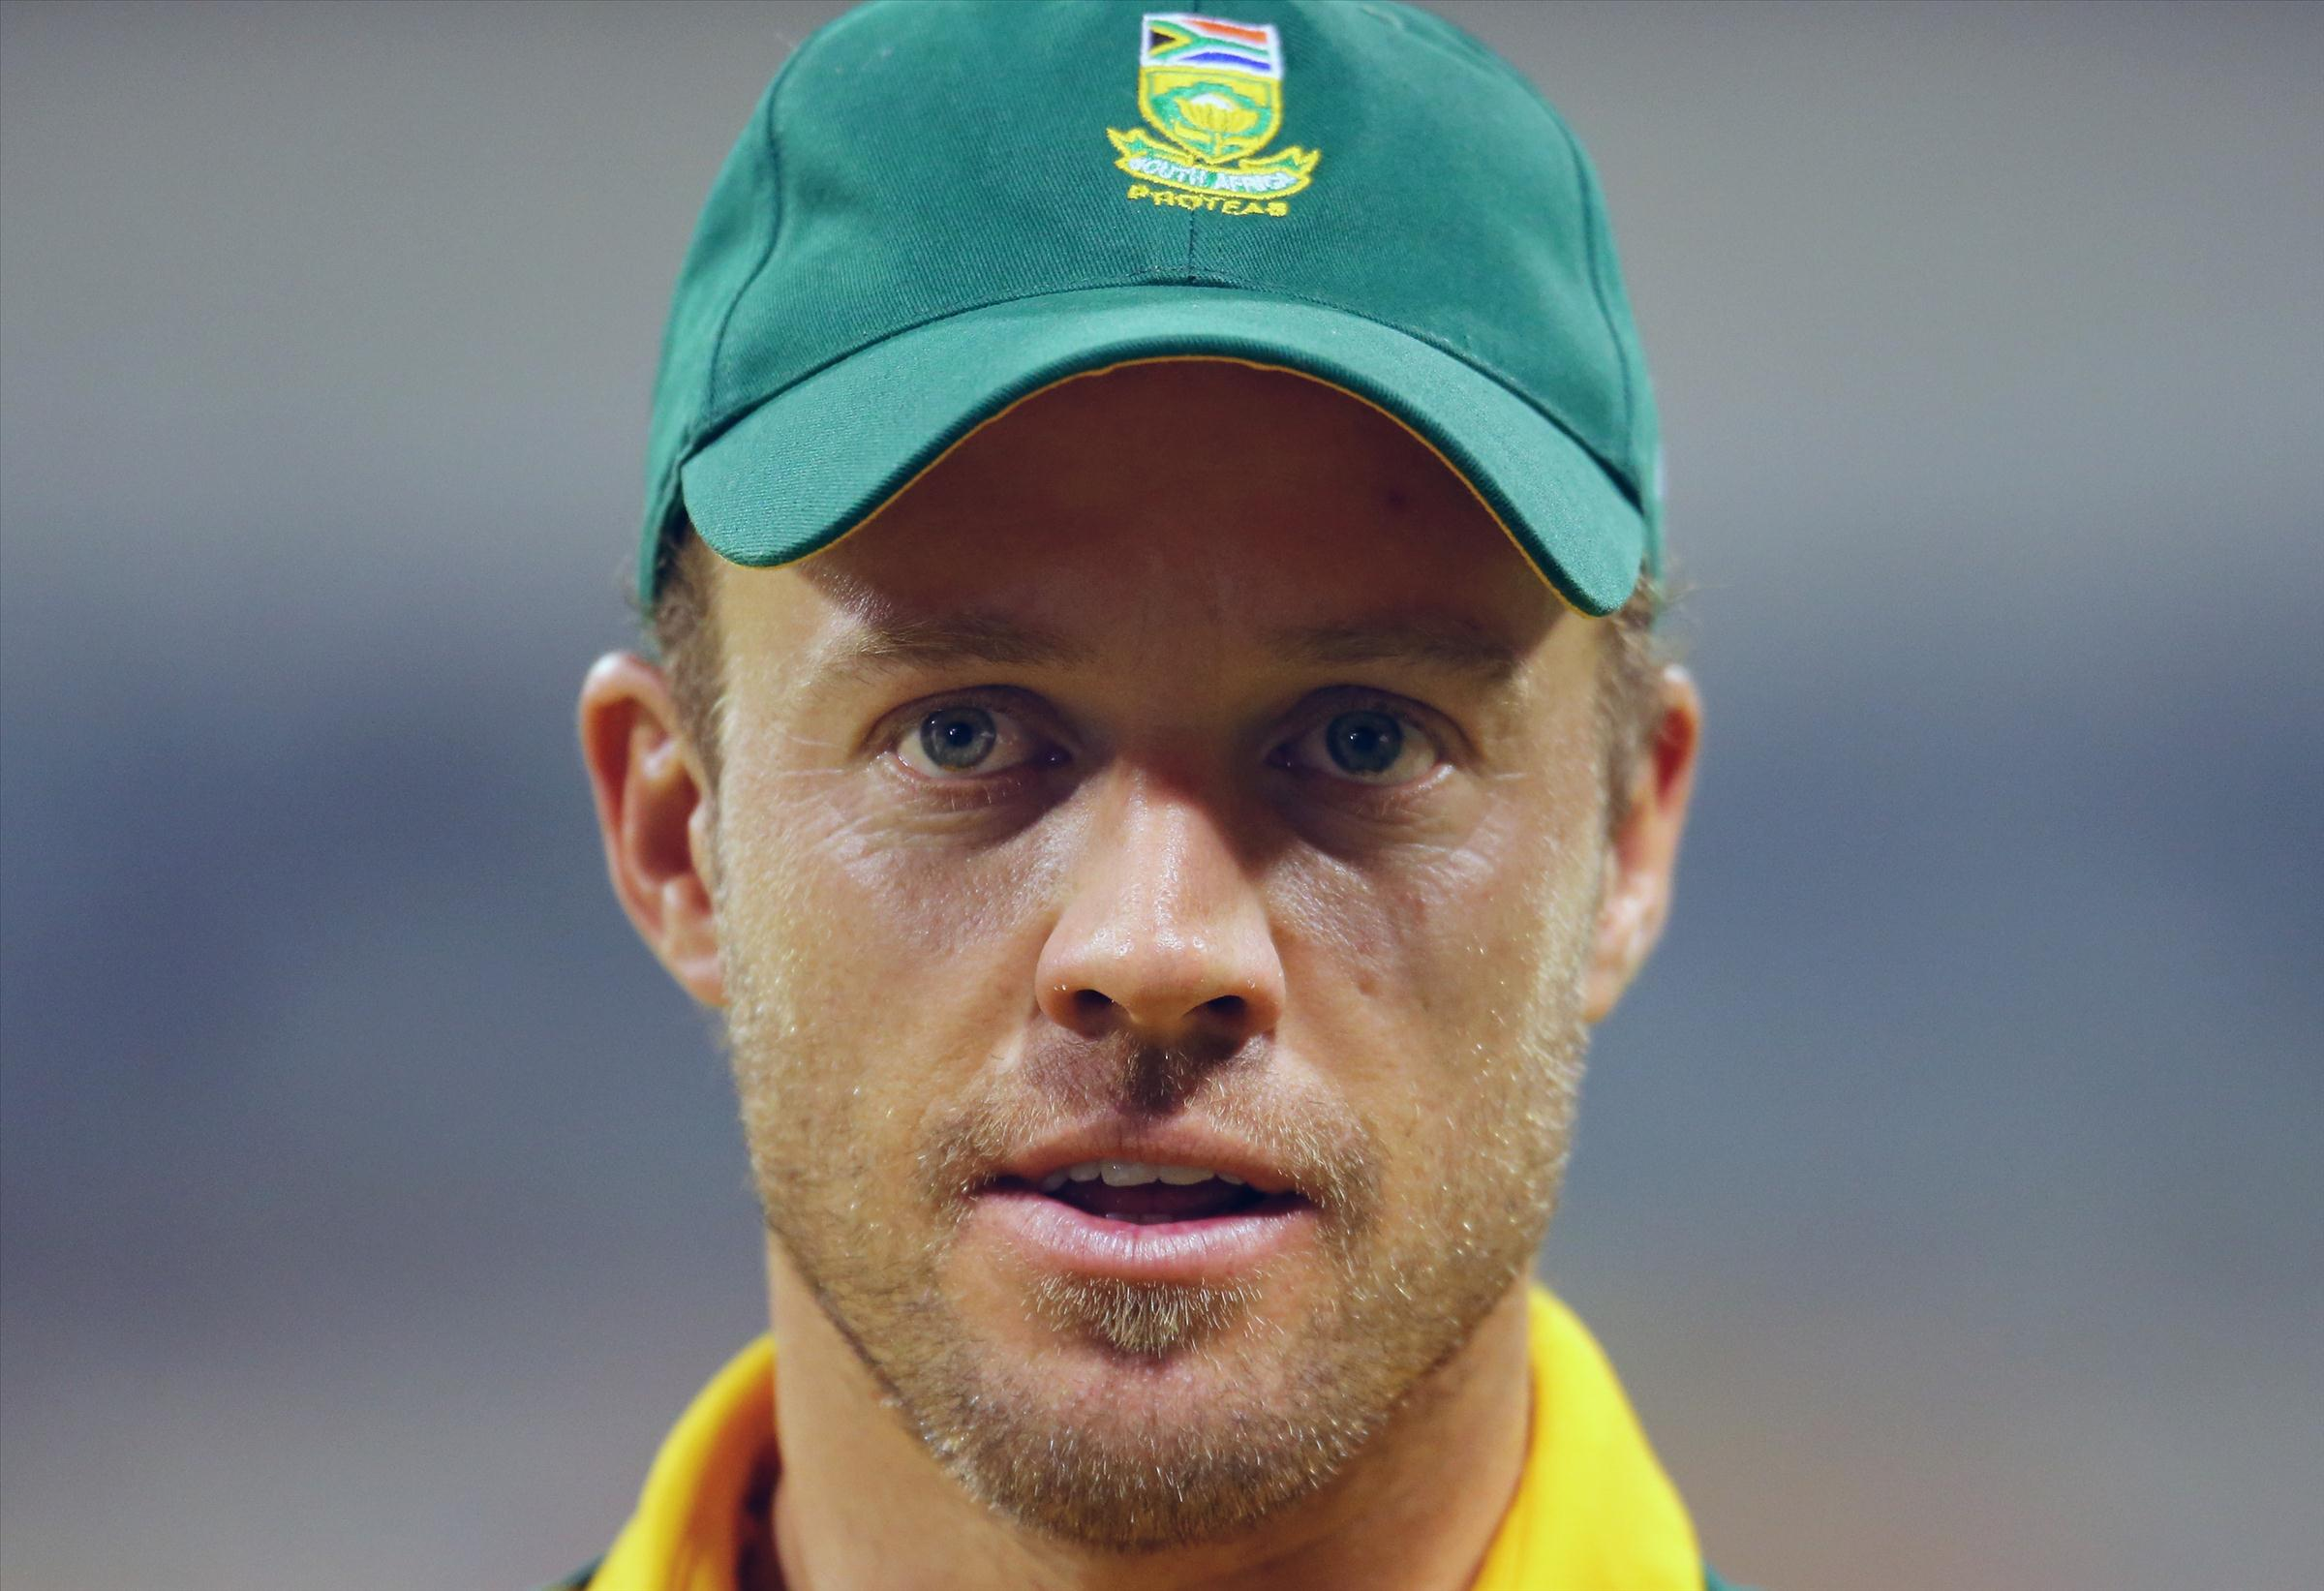 south african player AB de villiers free hd desktop backgrounds download